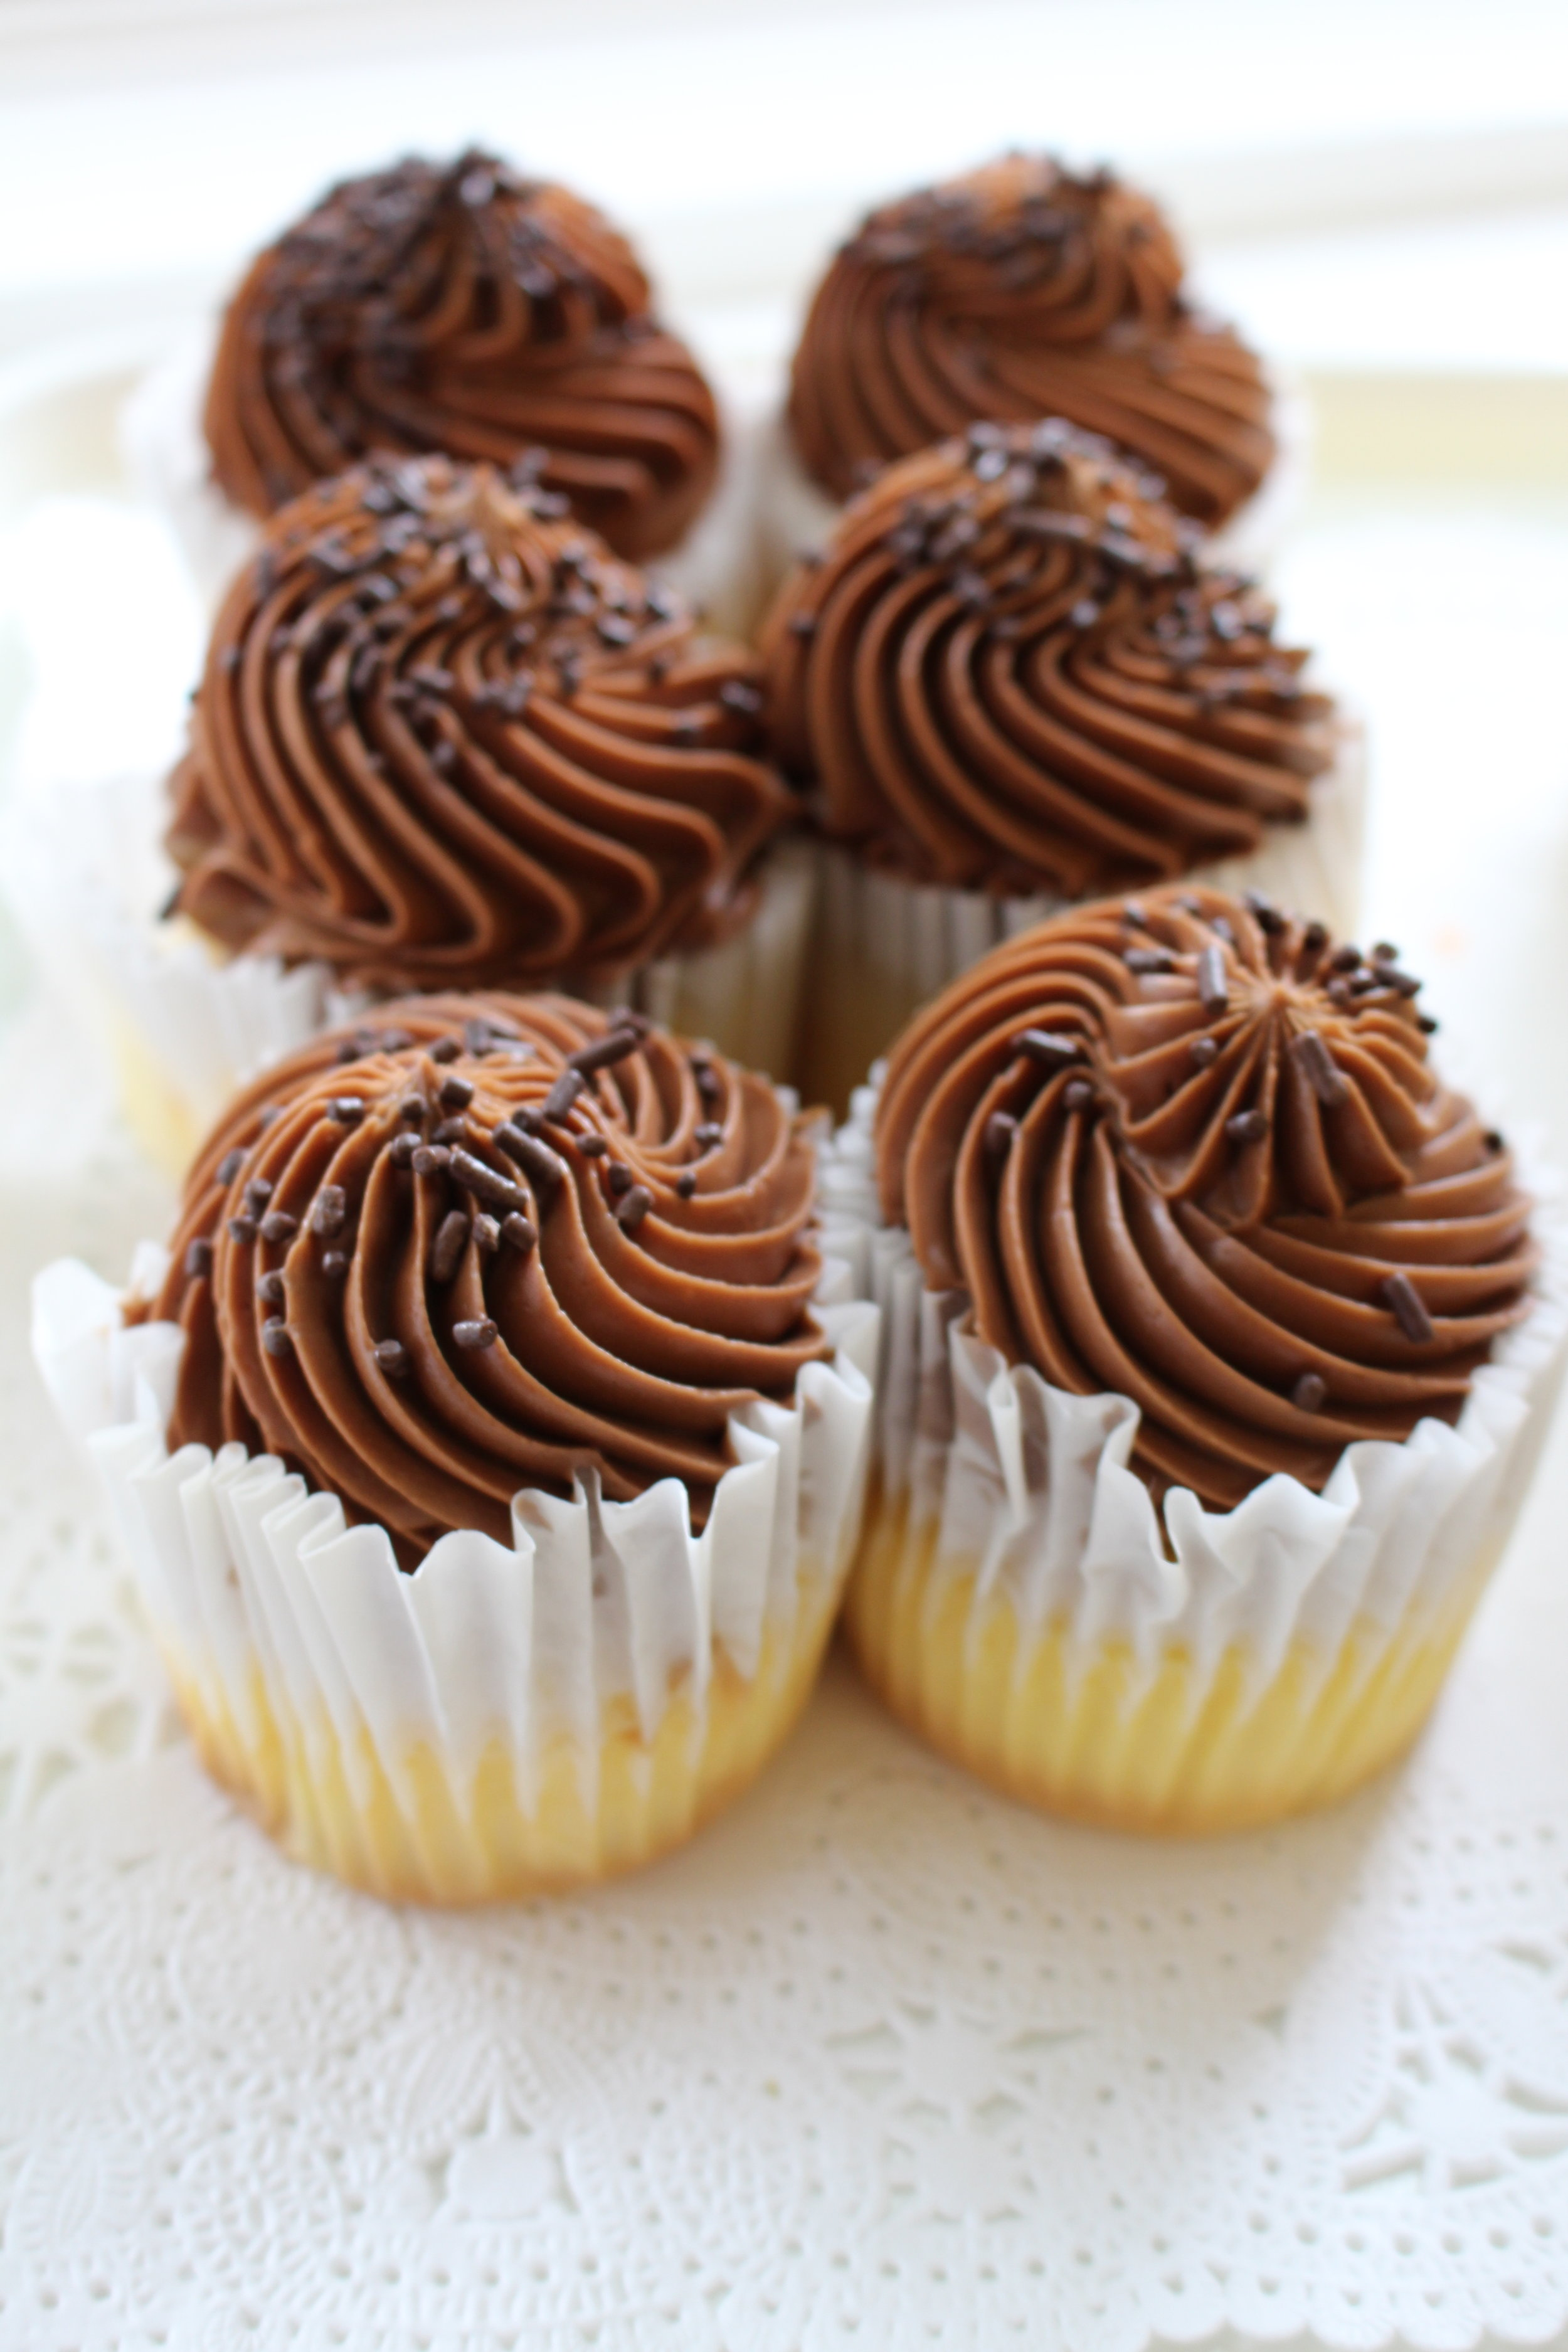 Yellow Cupcake with Chocolate Buttercream Frosting